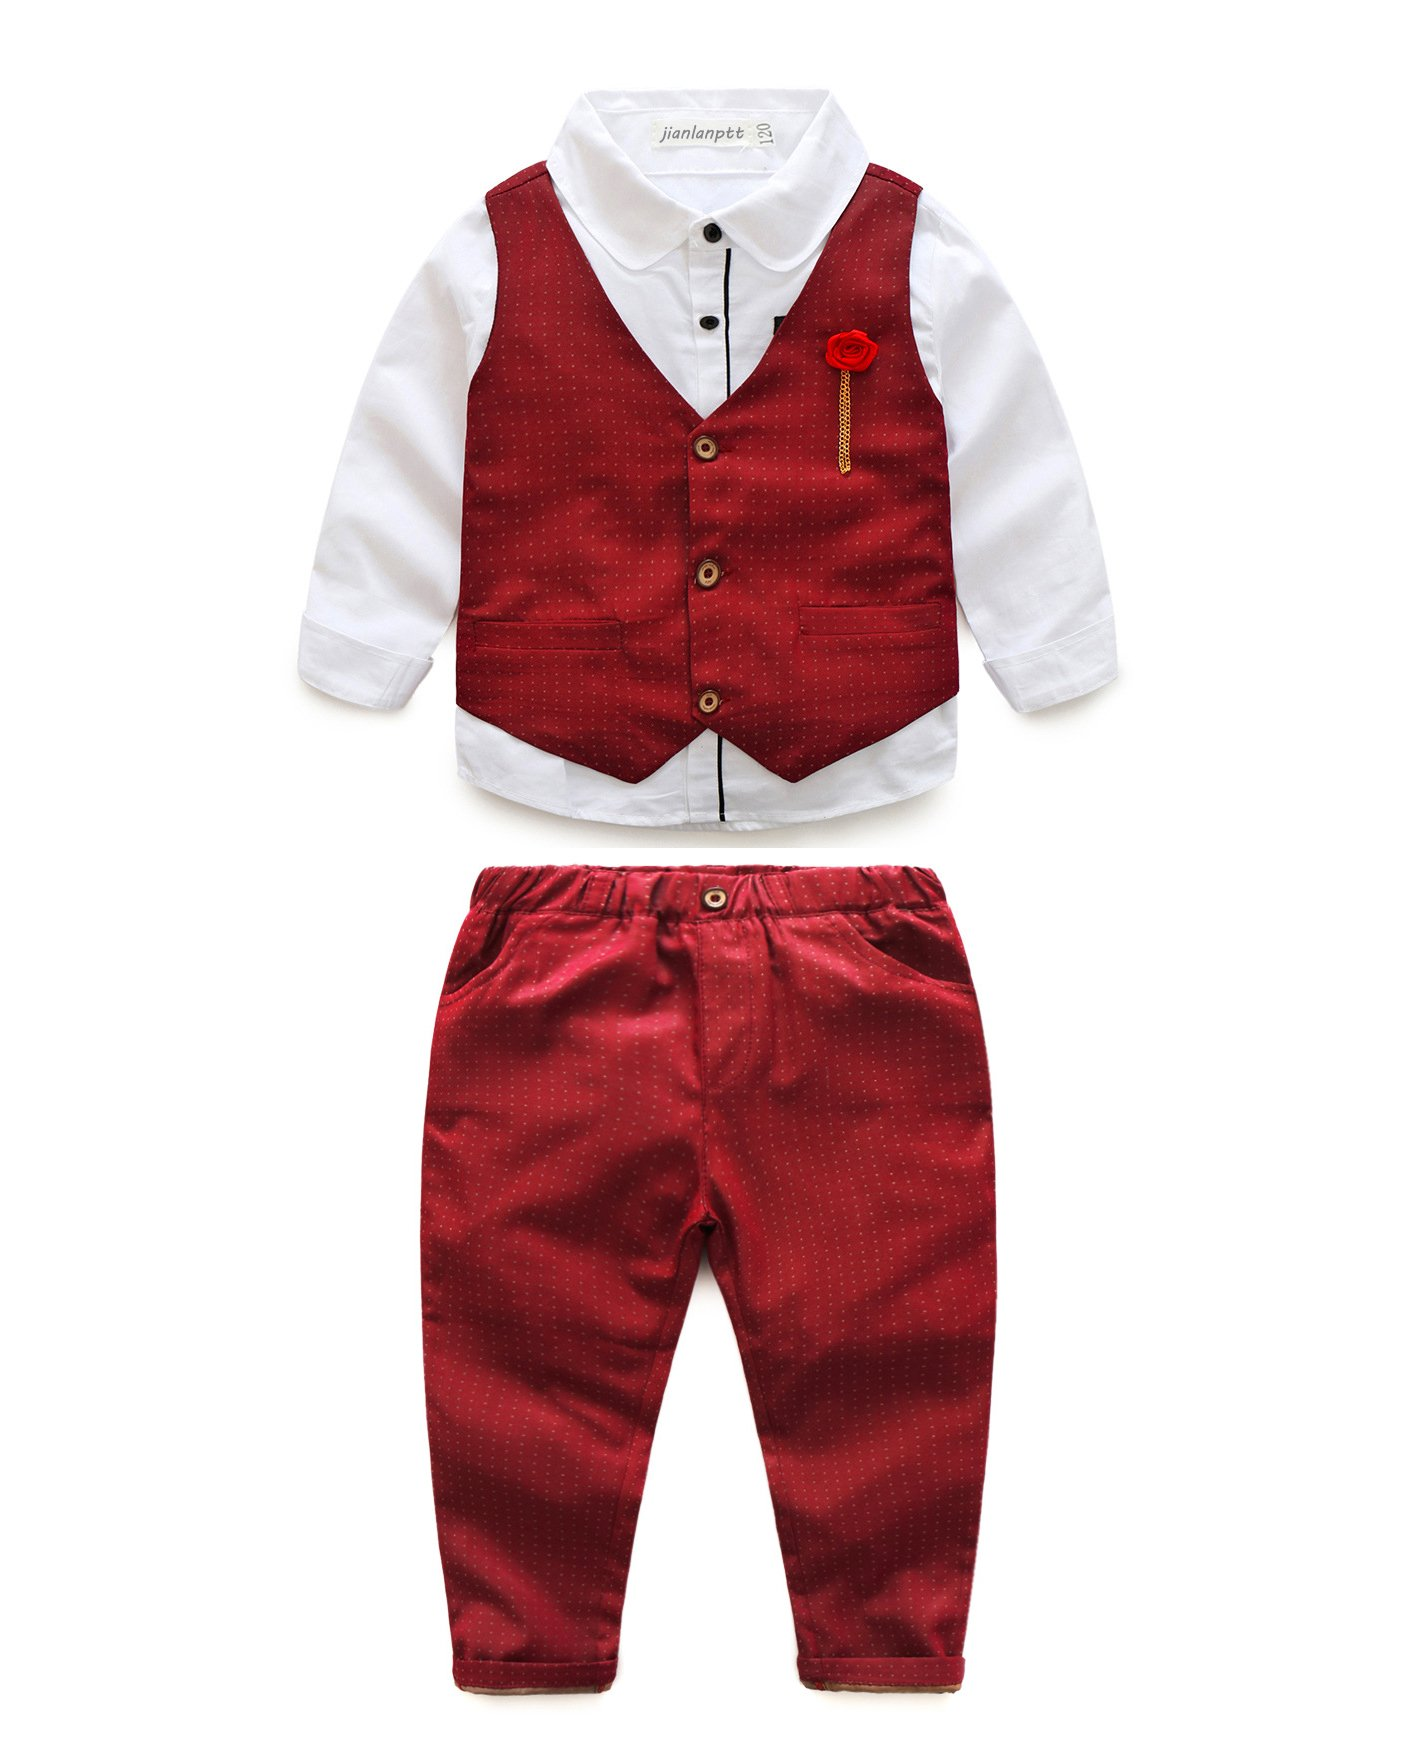 JIANLANPTT Baby Boy Wedding Party Formal Clothing Set Shirt Waistcoat Pants Suit Outfits Red 110